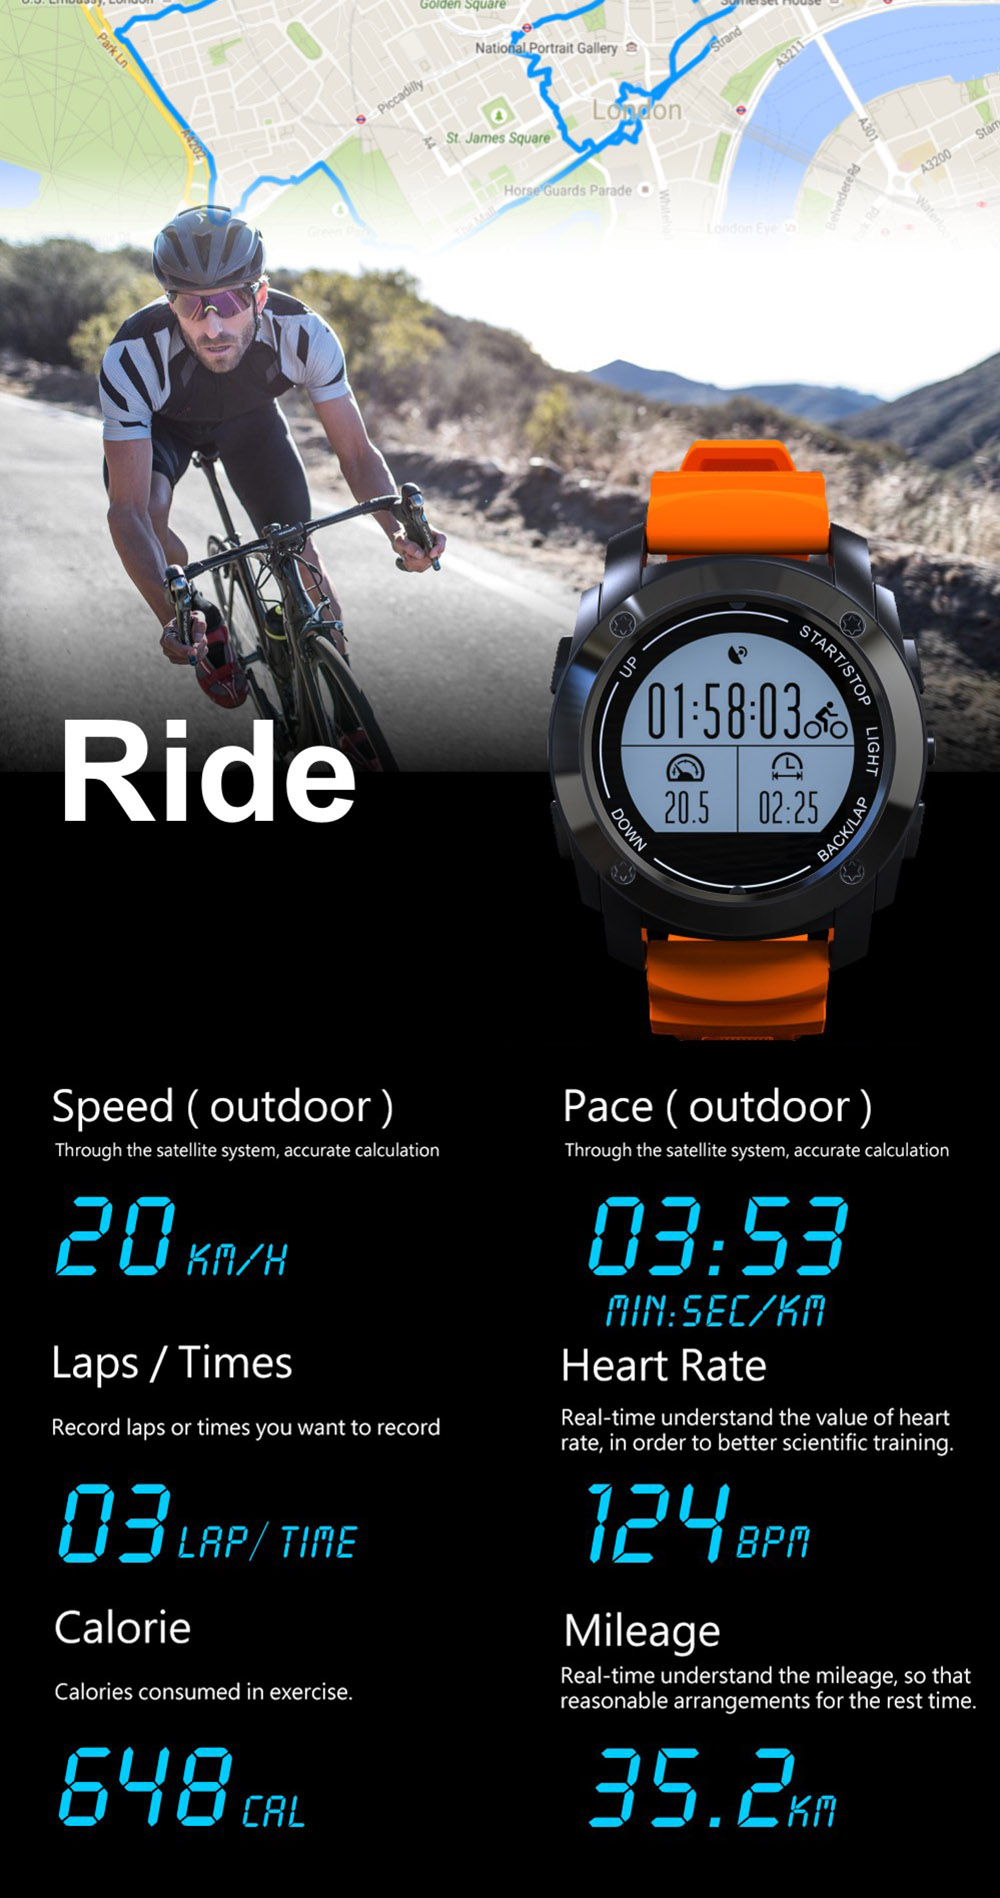 S928 Real-time Heart Rate Track Smart Wristband Air Pressure Environment Temperature Height Watch